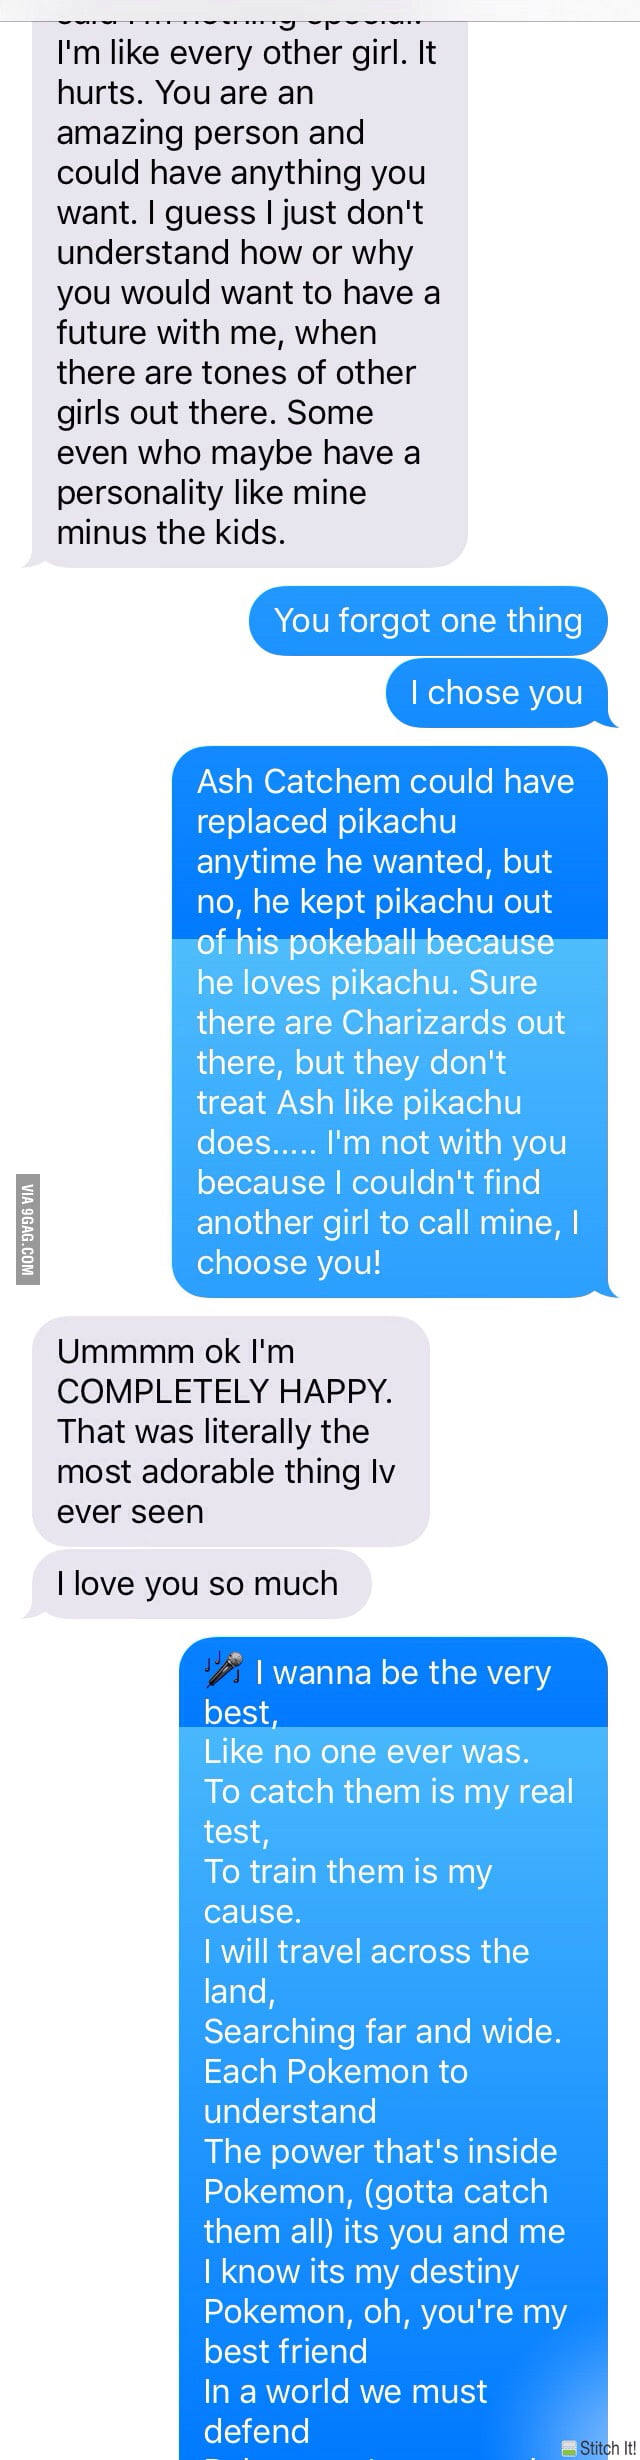 How To Cheer Up Your Girlfriend You Guys Should Know The Song 9gag